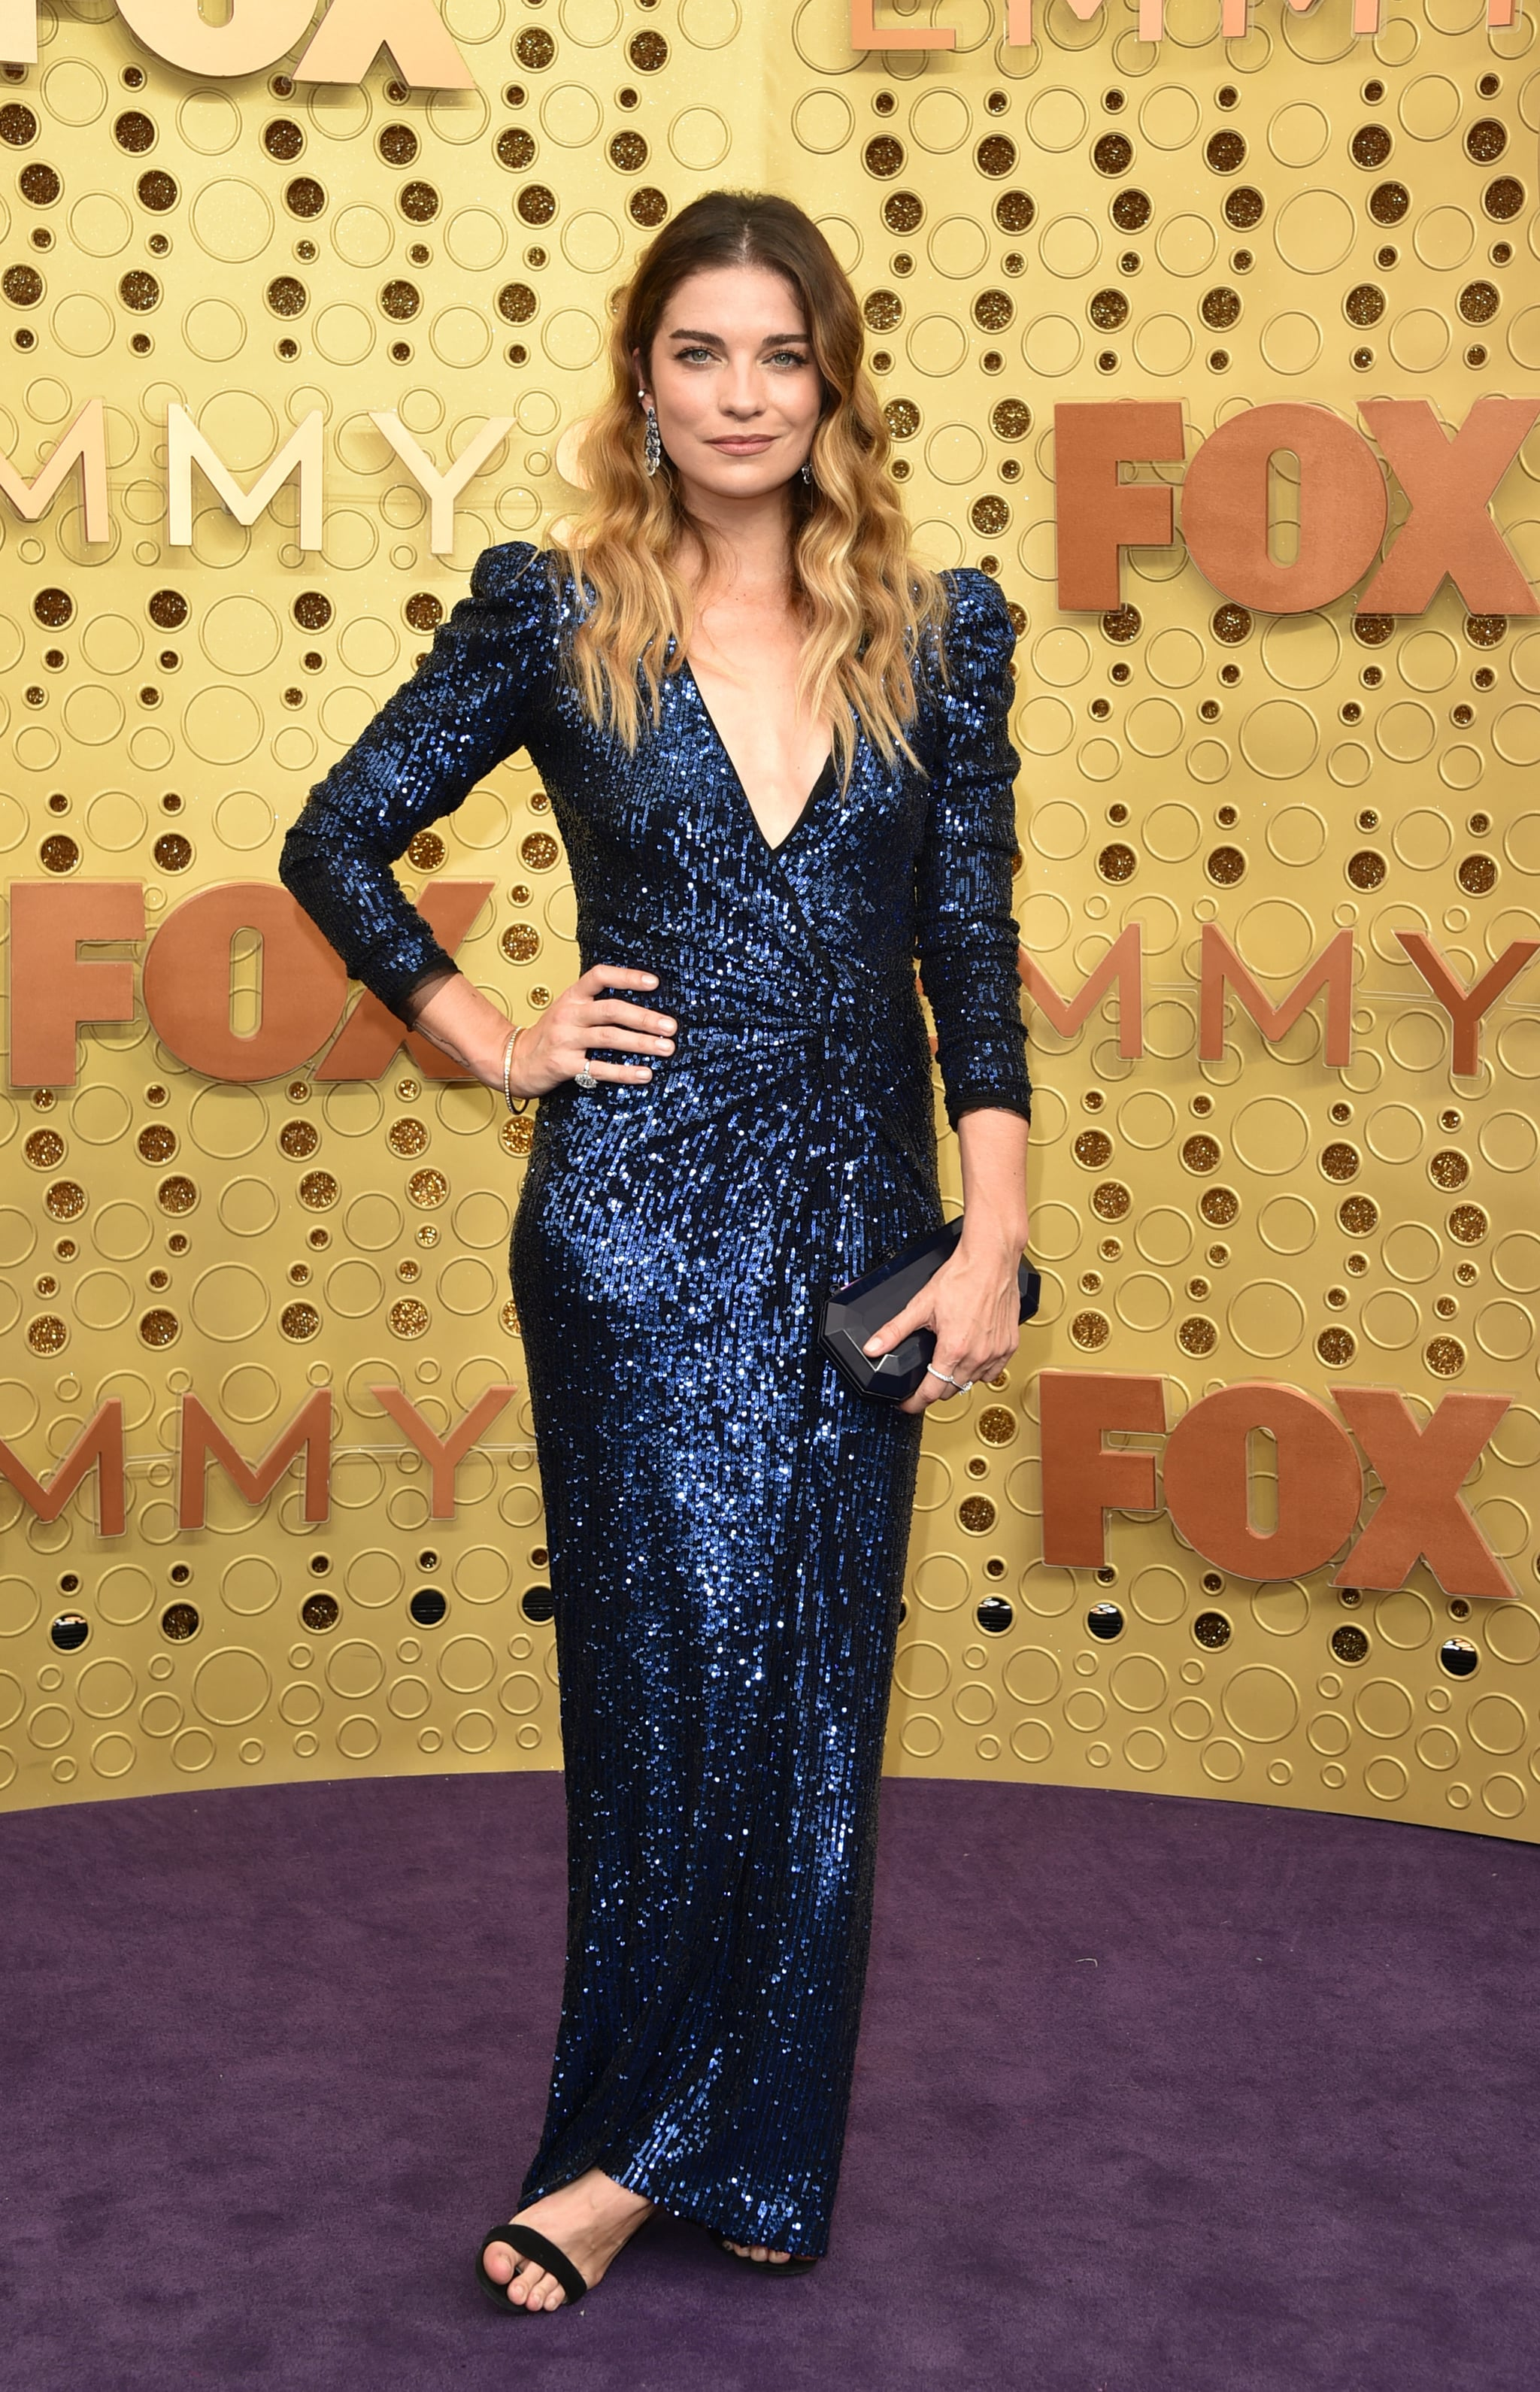 LOS ANGELES, CALIFORNIA - SEPTEMBER 22:  Annie Murphy attends the 71st Emmy Awards at Microsoft Theatre on September 22, 2019 in Los Angeles, California. (Photo by John Shearer/Getty Images)